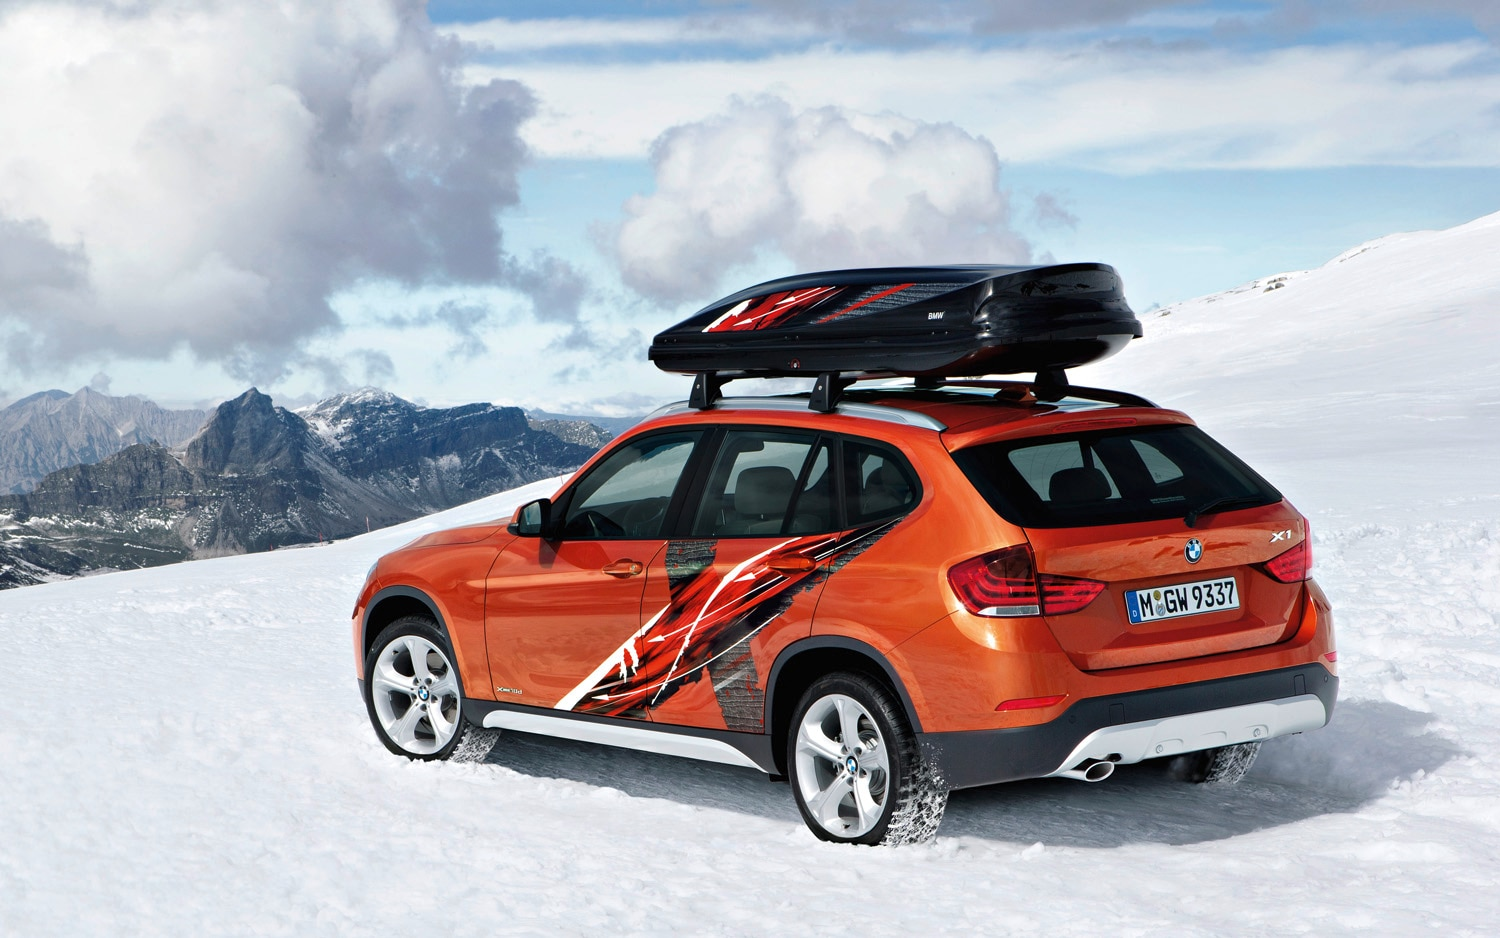 Bmw Dresses Up X1 Crossover To Match K2 Skis